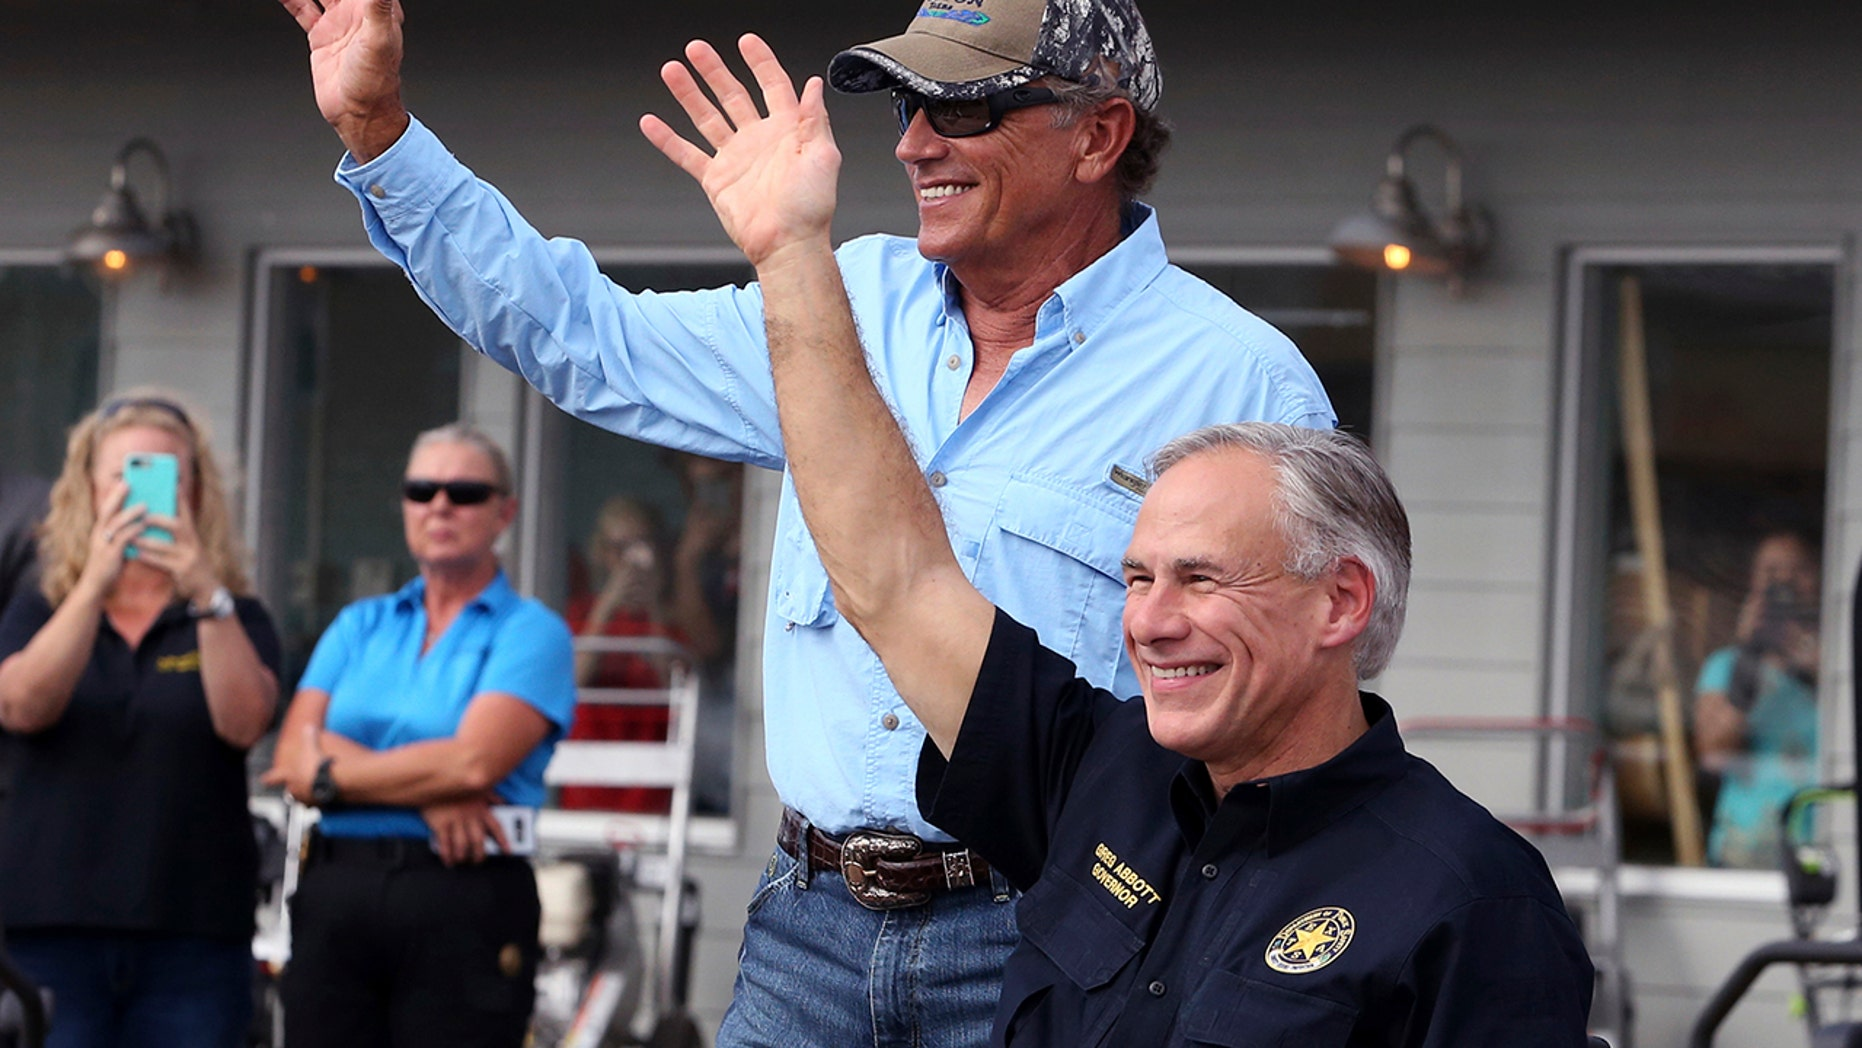 """In this Sept. 21, 2017, file photo, George Strait, left, and Texas Gov. Greg Abbott wave to the crowd in Rockport, Texas, during a visit with individuals affected by Hurricane Harvey. Strait leads a new tourism campaign for Hurricane Harvey-damaged Rockport and Fulton nearly 10 months after the storm devastated the area he sometimes calls home. Strait is part of the """"Find Yourself in Rockport-Fulton"""" radio and TV campaign to encourage tourists to return to the area hard-hit when Harvey made landfall in August."""